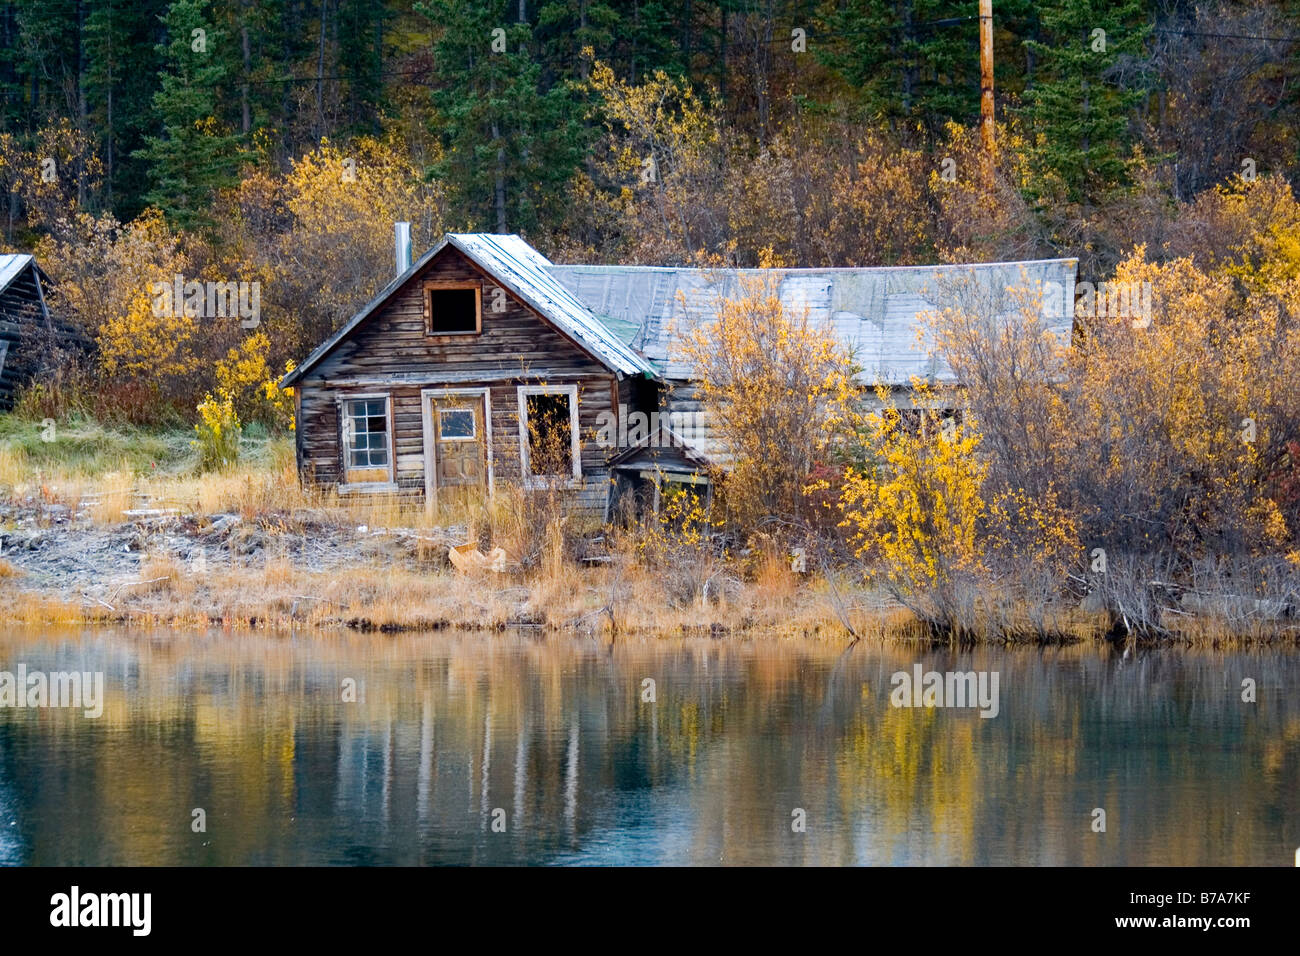 Marvelous photograph of Stock Photo Historic log cabin Klondike Gold Rush Nares Lake Lake  with #9B7430 color and 1300x956 pixels